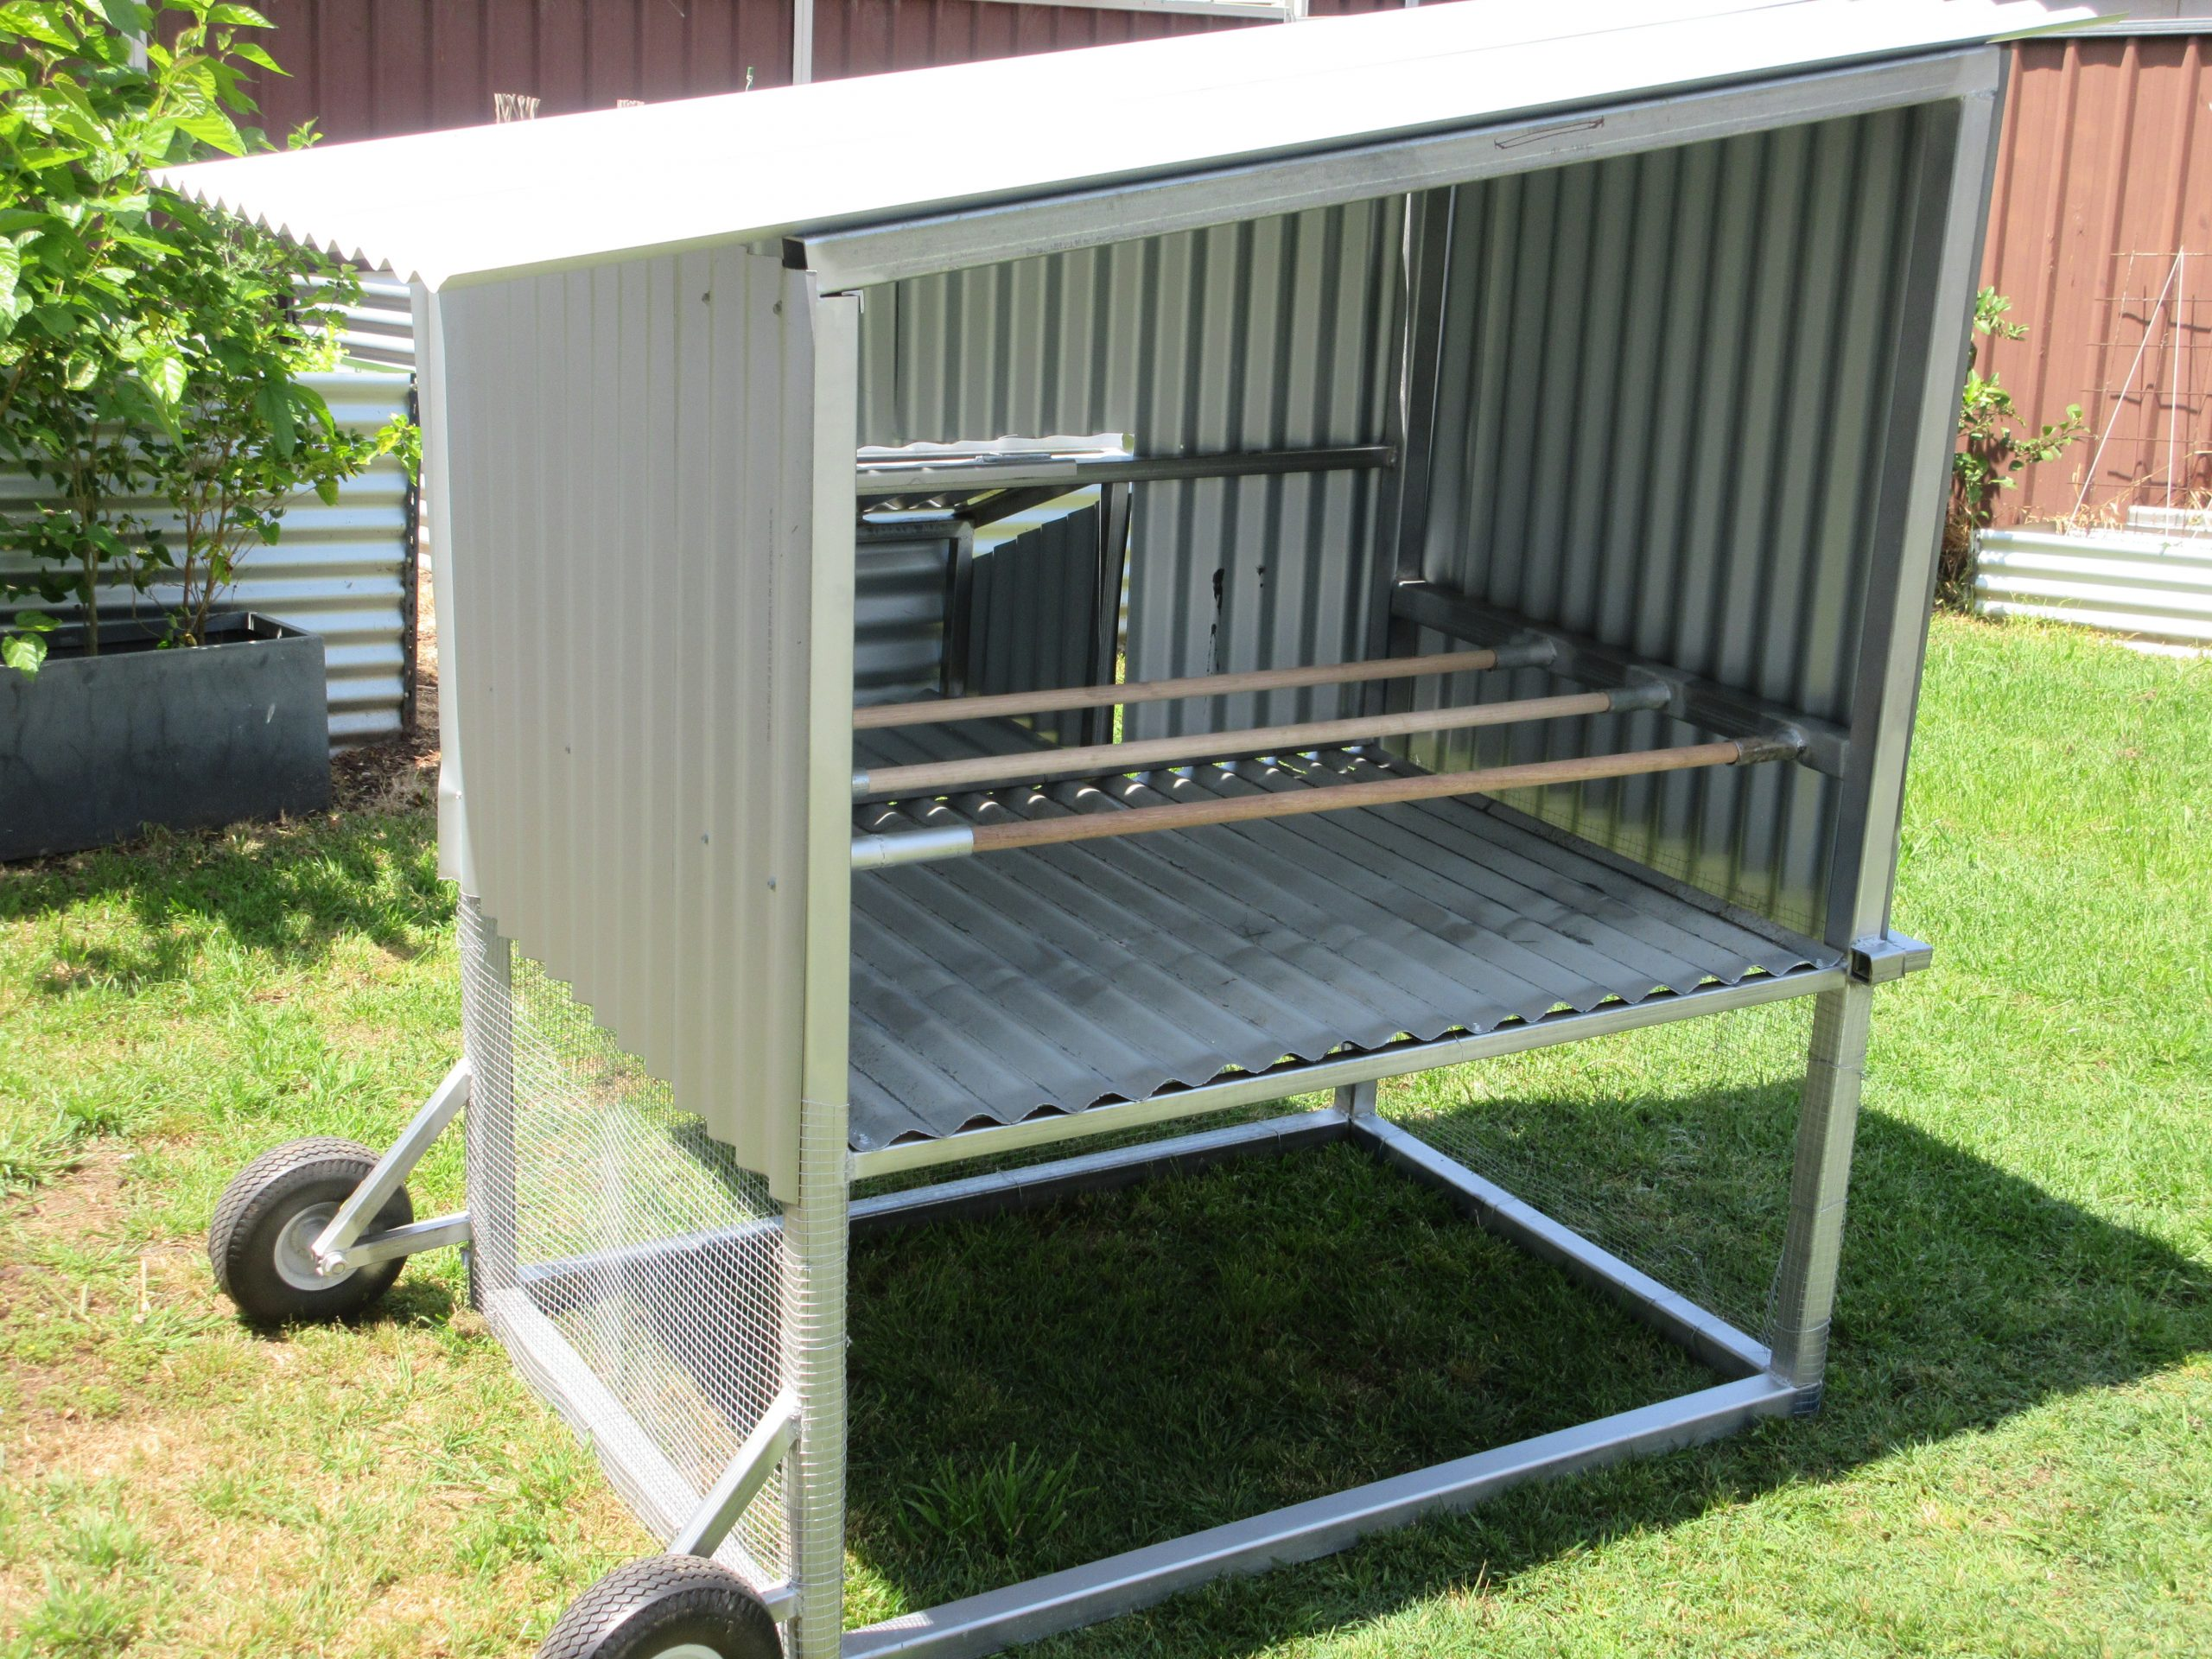 build from steel, Chicken Coop, Chicken Hutch, Chickens, custom chicken coop, custom chicken hutch, custom steel fabrication, finigan wright fabrication, Hutch, metal fabrication, robertson new south wales, robertson nsw, steel chicken hutch, steel fabrication